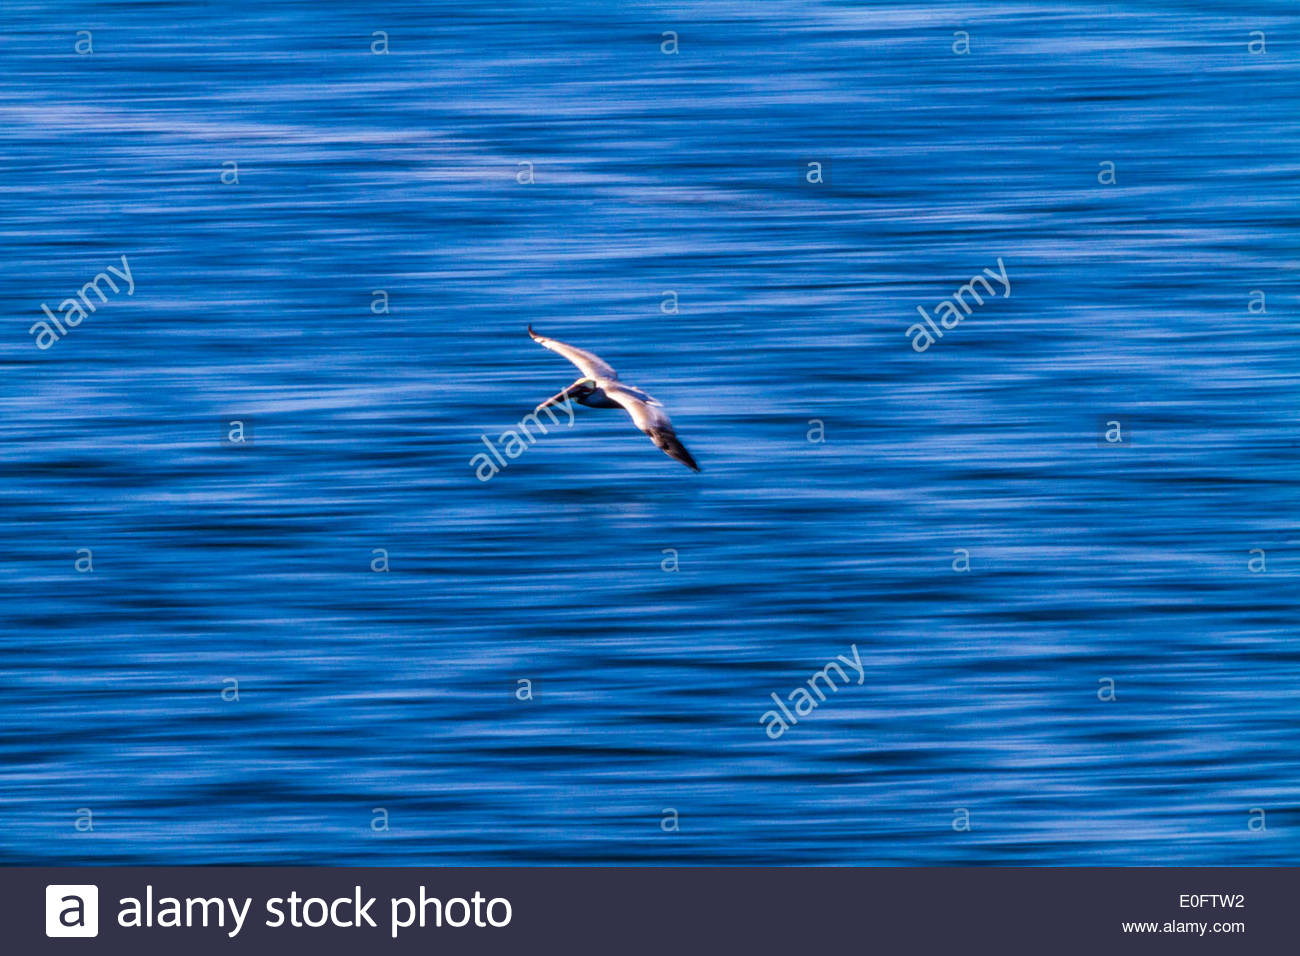 A pelican in flight is captured with a blurred background of the Gulf Of California, Mexico - Stock Image